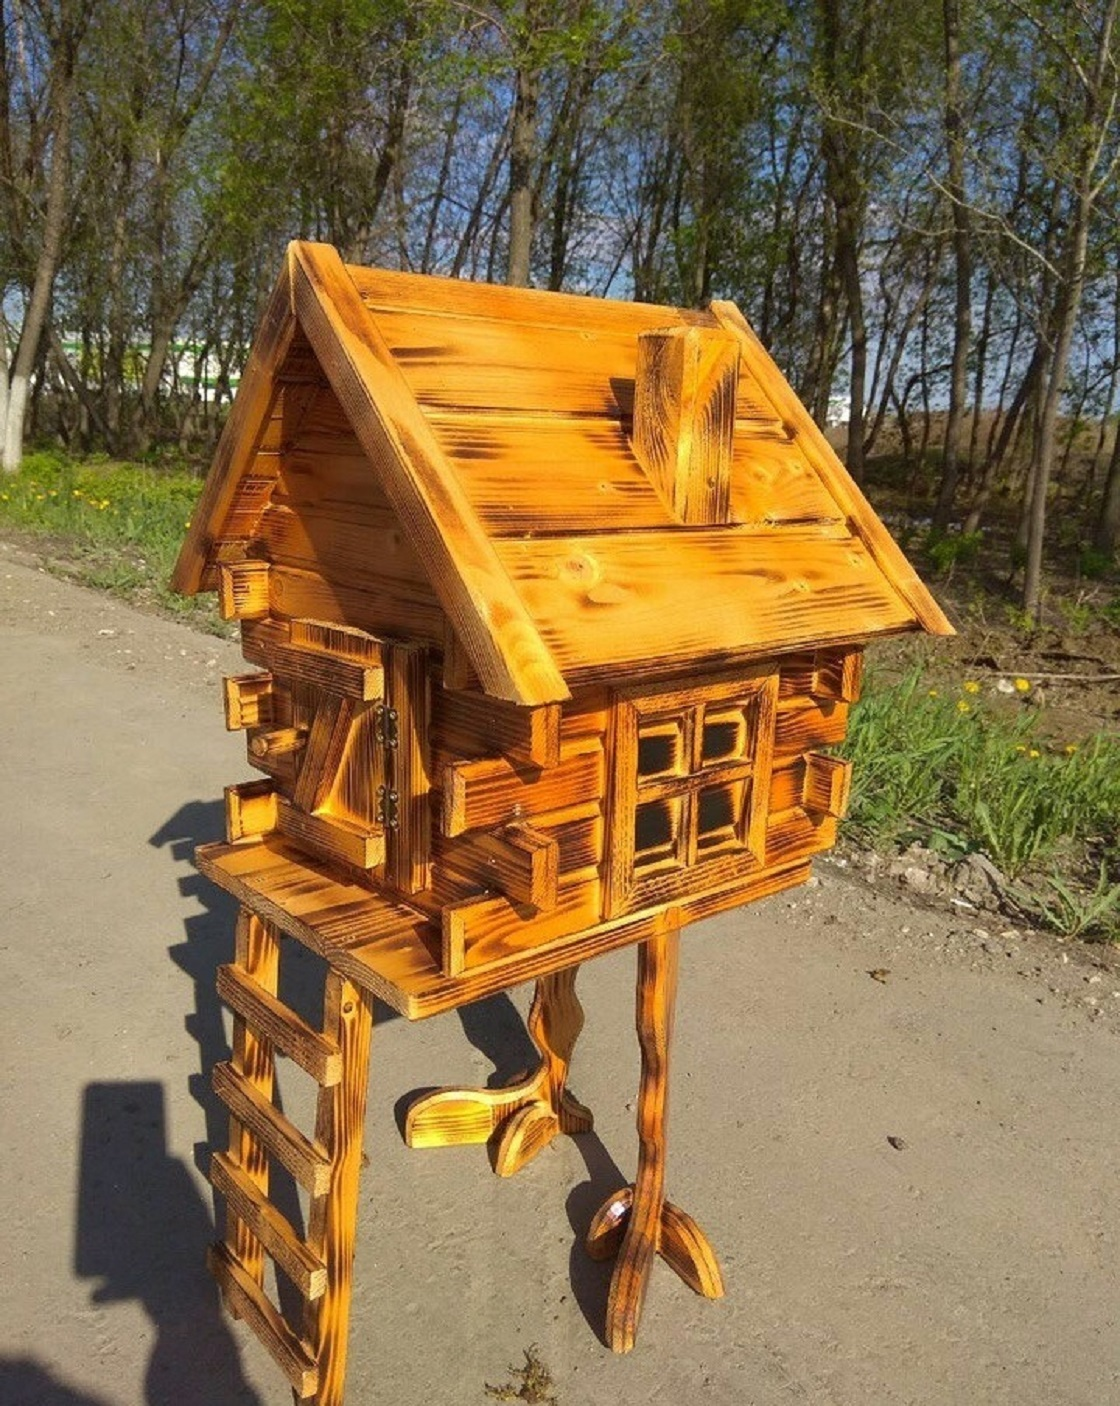 """The hut on chicken legs,""""the House of BABA YAGA"""""""